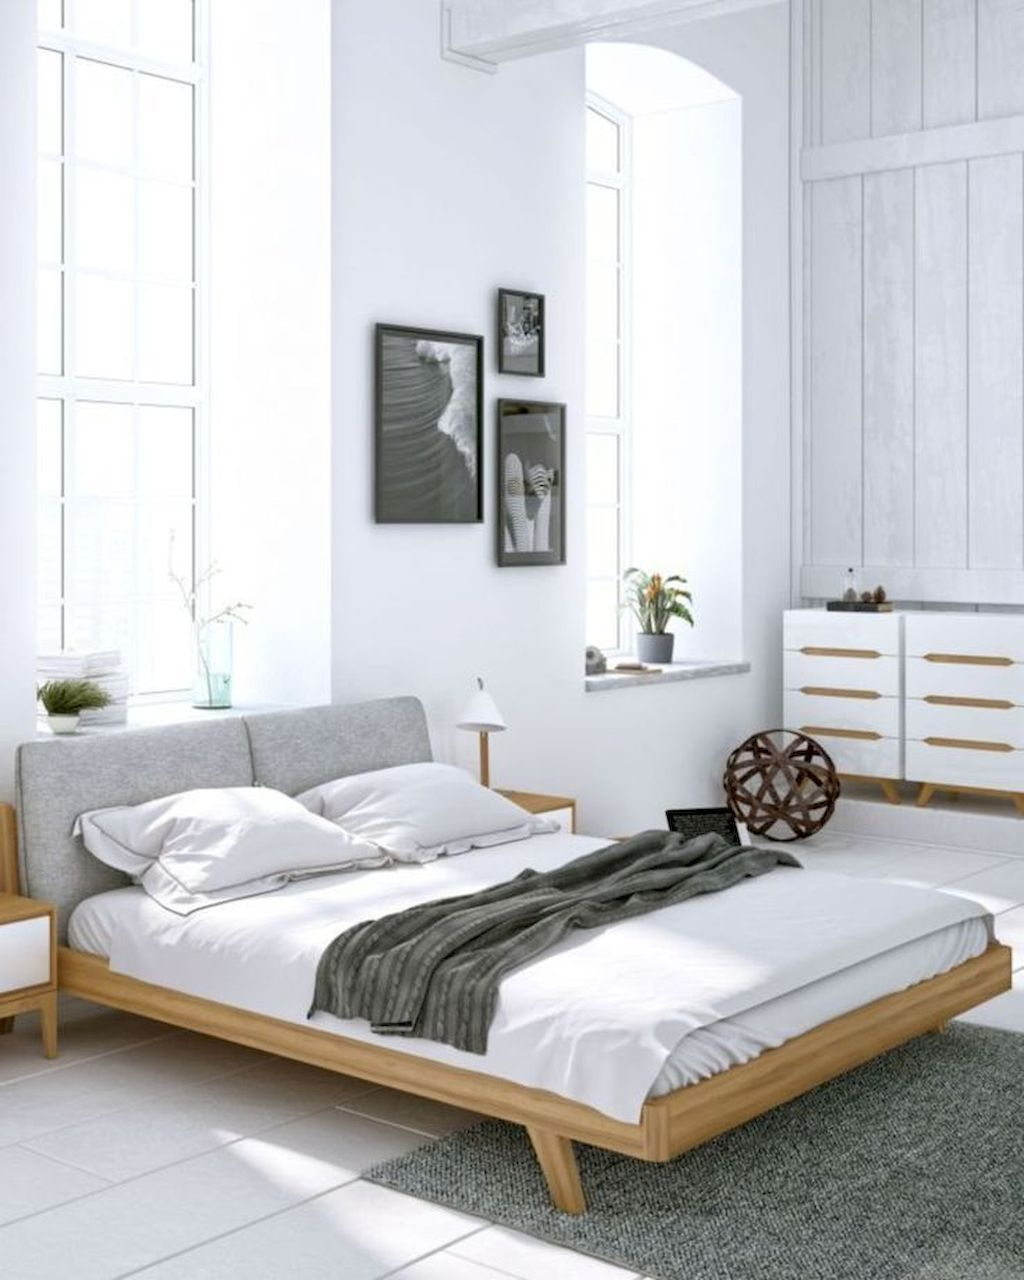 25 Scandinavian Bedroom Ideas To Give Airy And Stylish Look - 24Q